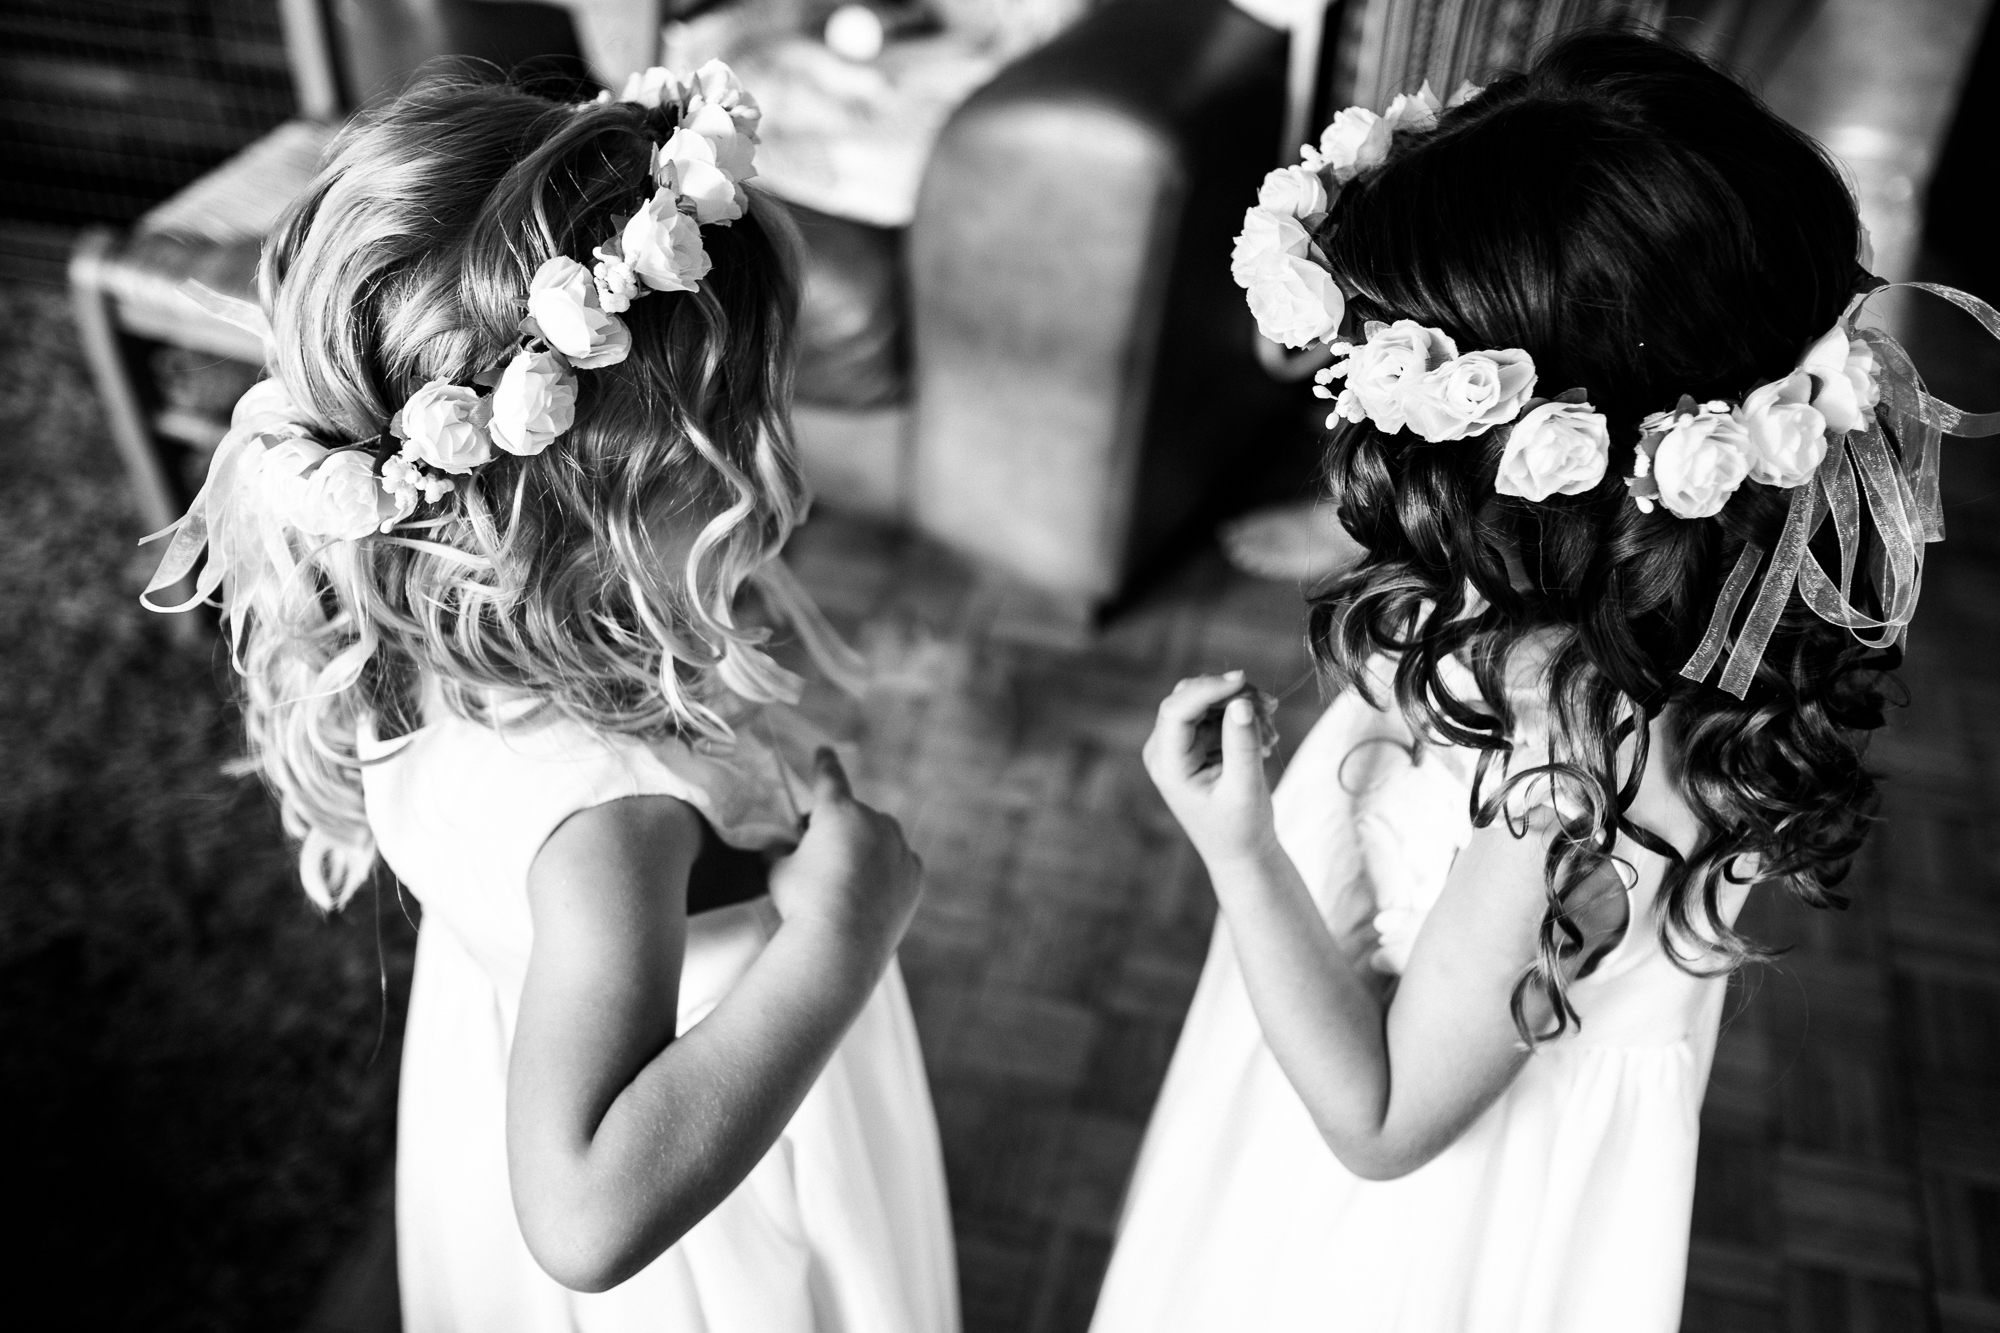 Local Vintage Village Hall Wedding in Staffordshire with Family and Kids Lawn Games Musician Guitarist - Jenny Harper Photography-17.JPG